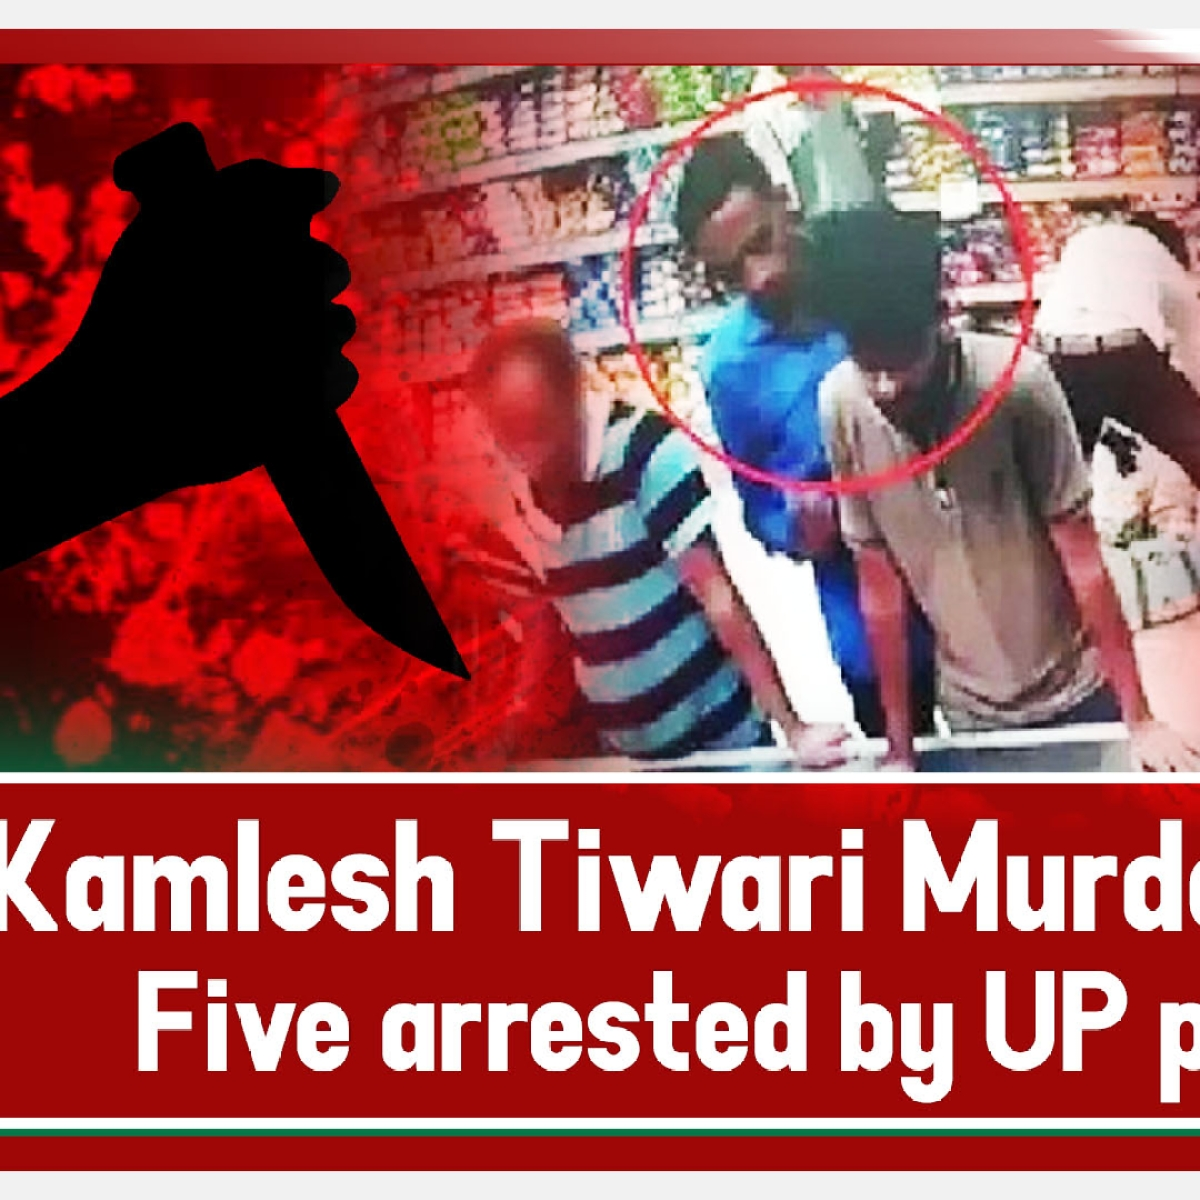 Kamlesh Tiwari Murder Case: Five Arrested By UP Police In Connection With Kamlesh Tiwari's Murder